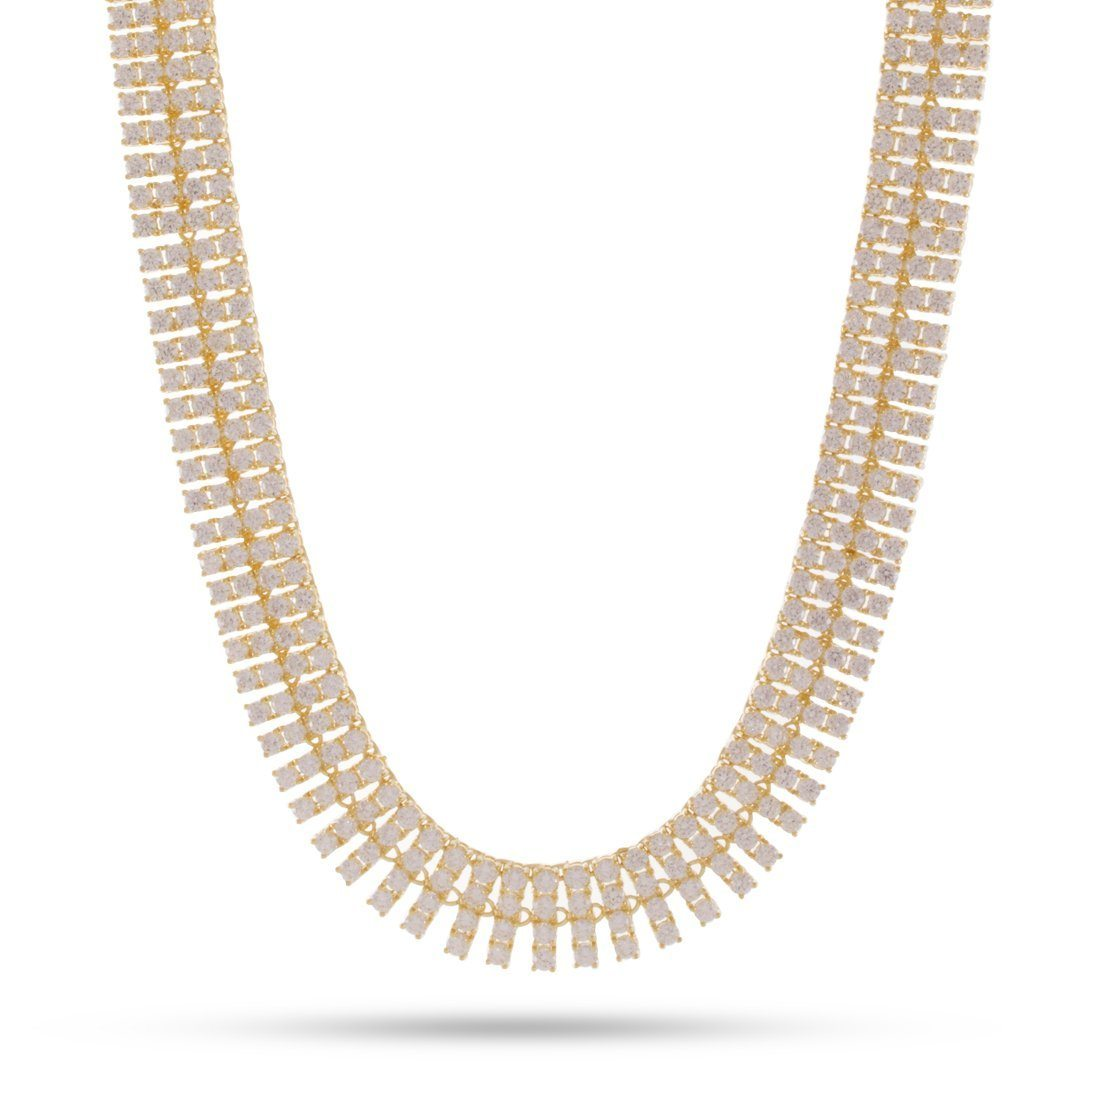 Image of 4 Row 14K Gold Tennis Necklace